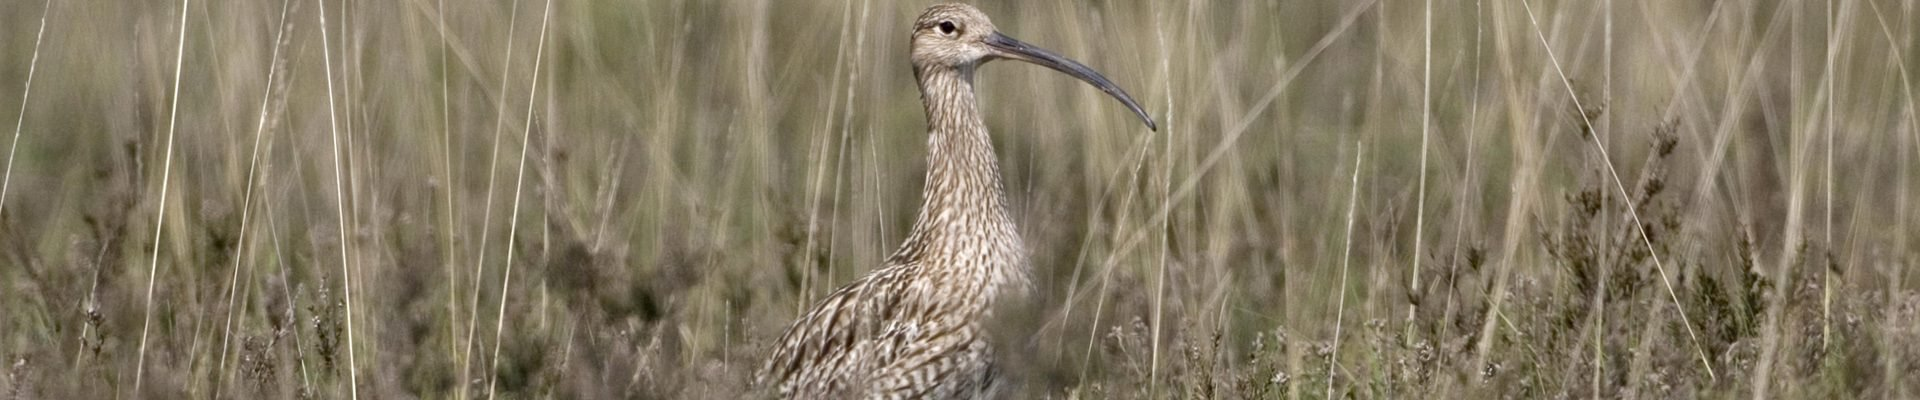 Eurasion Curlew on New Forest heathland